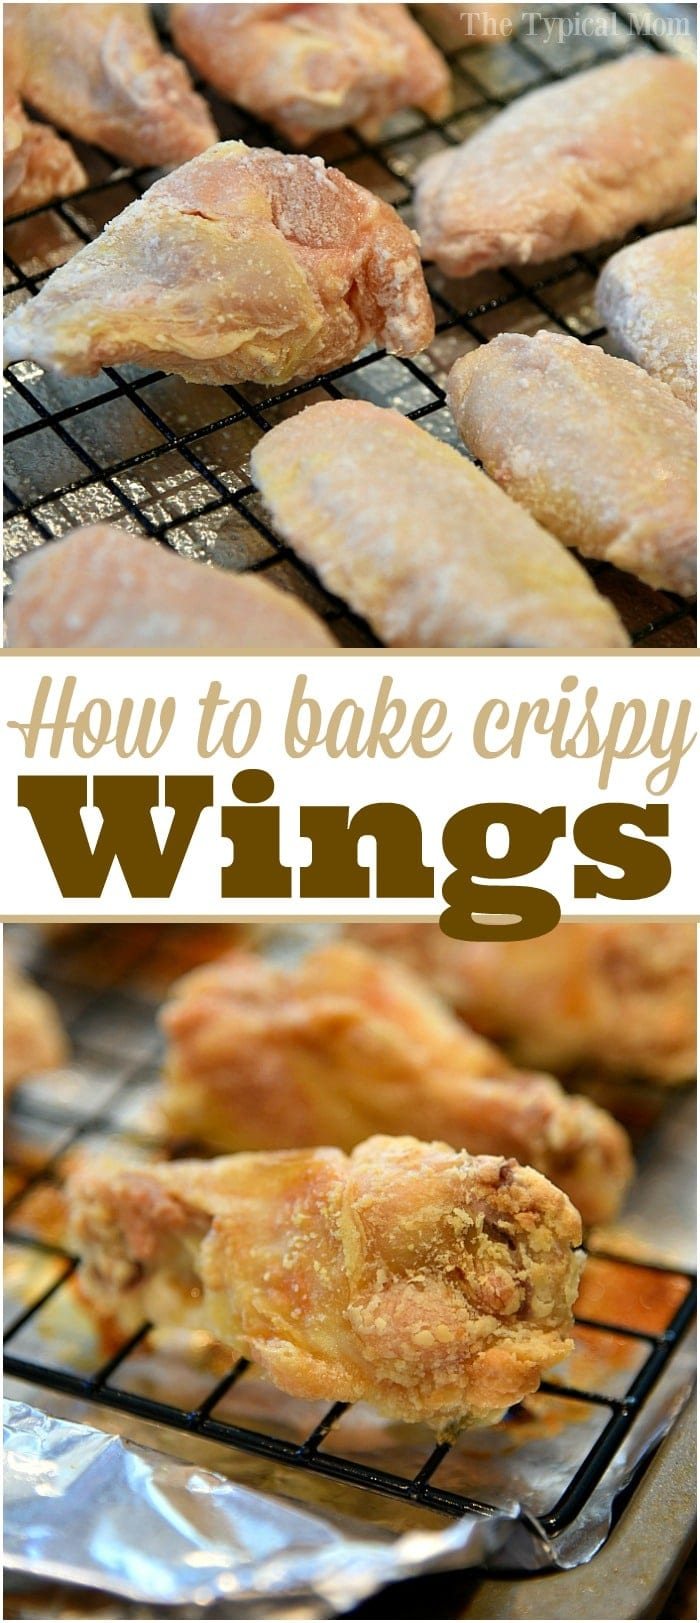 This is how to bake crispy chicken wings in the oven that you will absolutely love! We make these all the time as an appetizer or dinner and they come out crunchy and crispy every time. Here's the trick to making juicy crispy baked chicken wings without frying them. #crispy #baked #chicken #wings #healthy